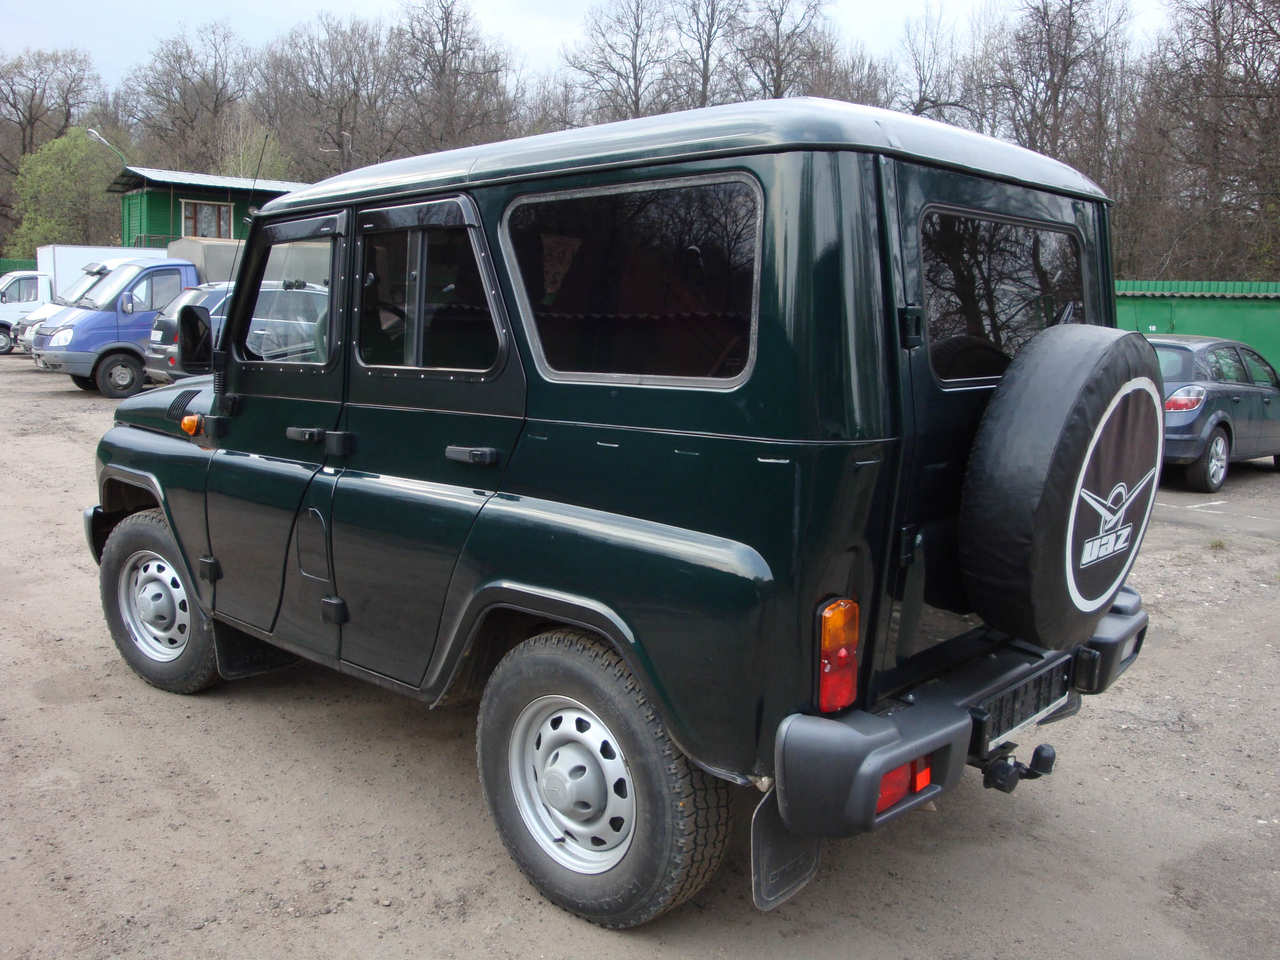 2008 uaz hunter photos 2 4 diesel manual for sale. Black Bedroom Furniture Sets. Home Design Ideas